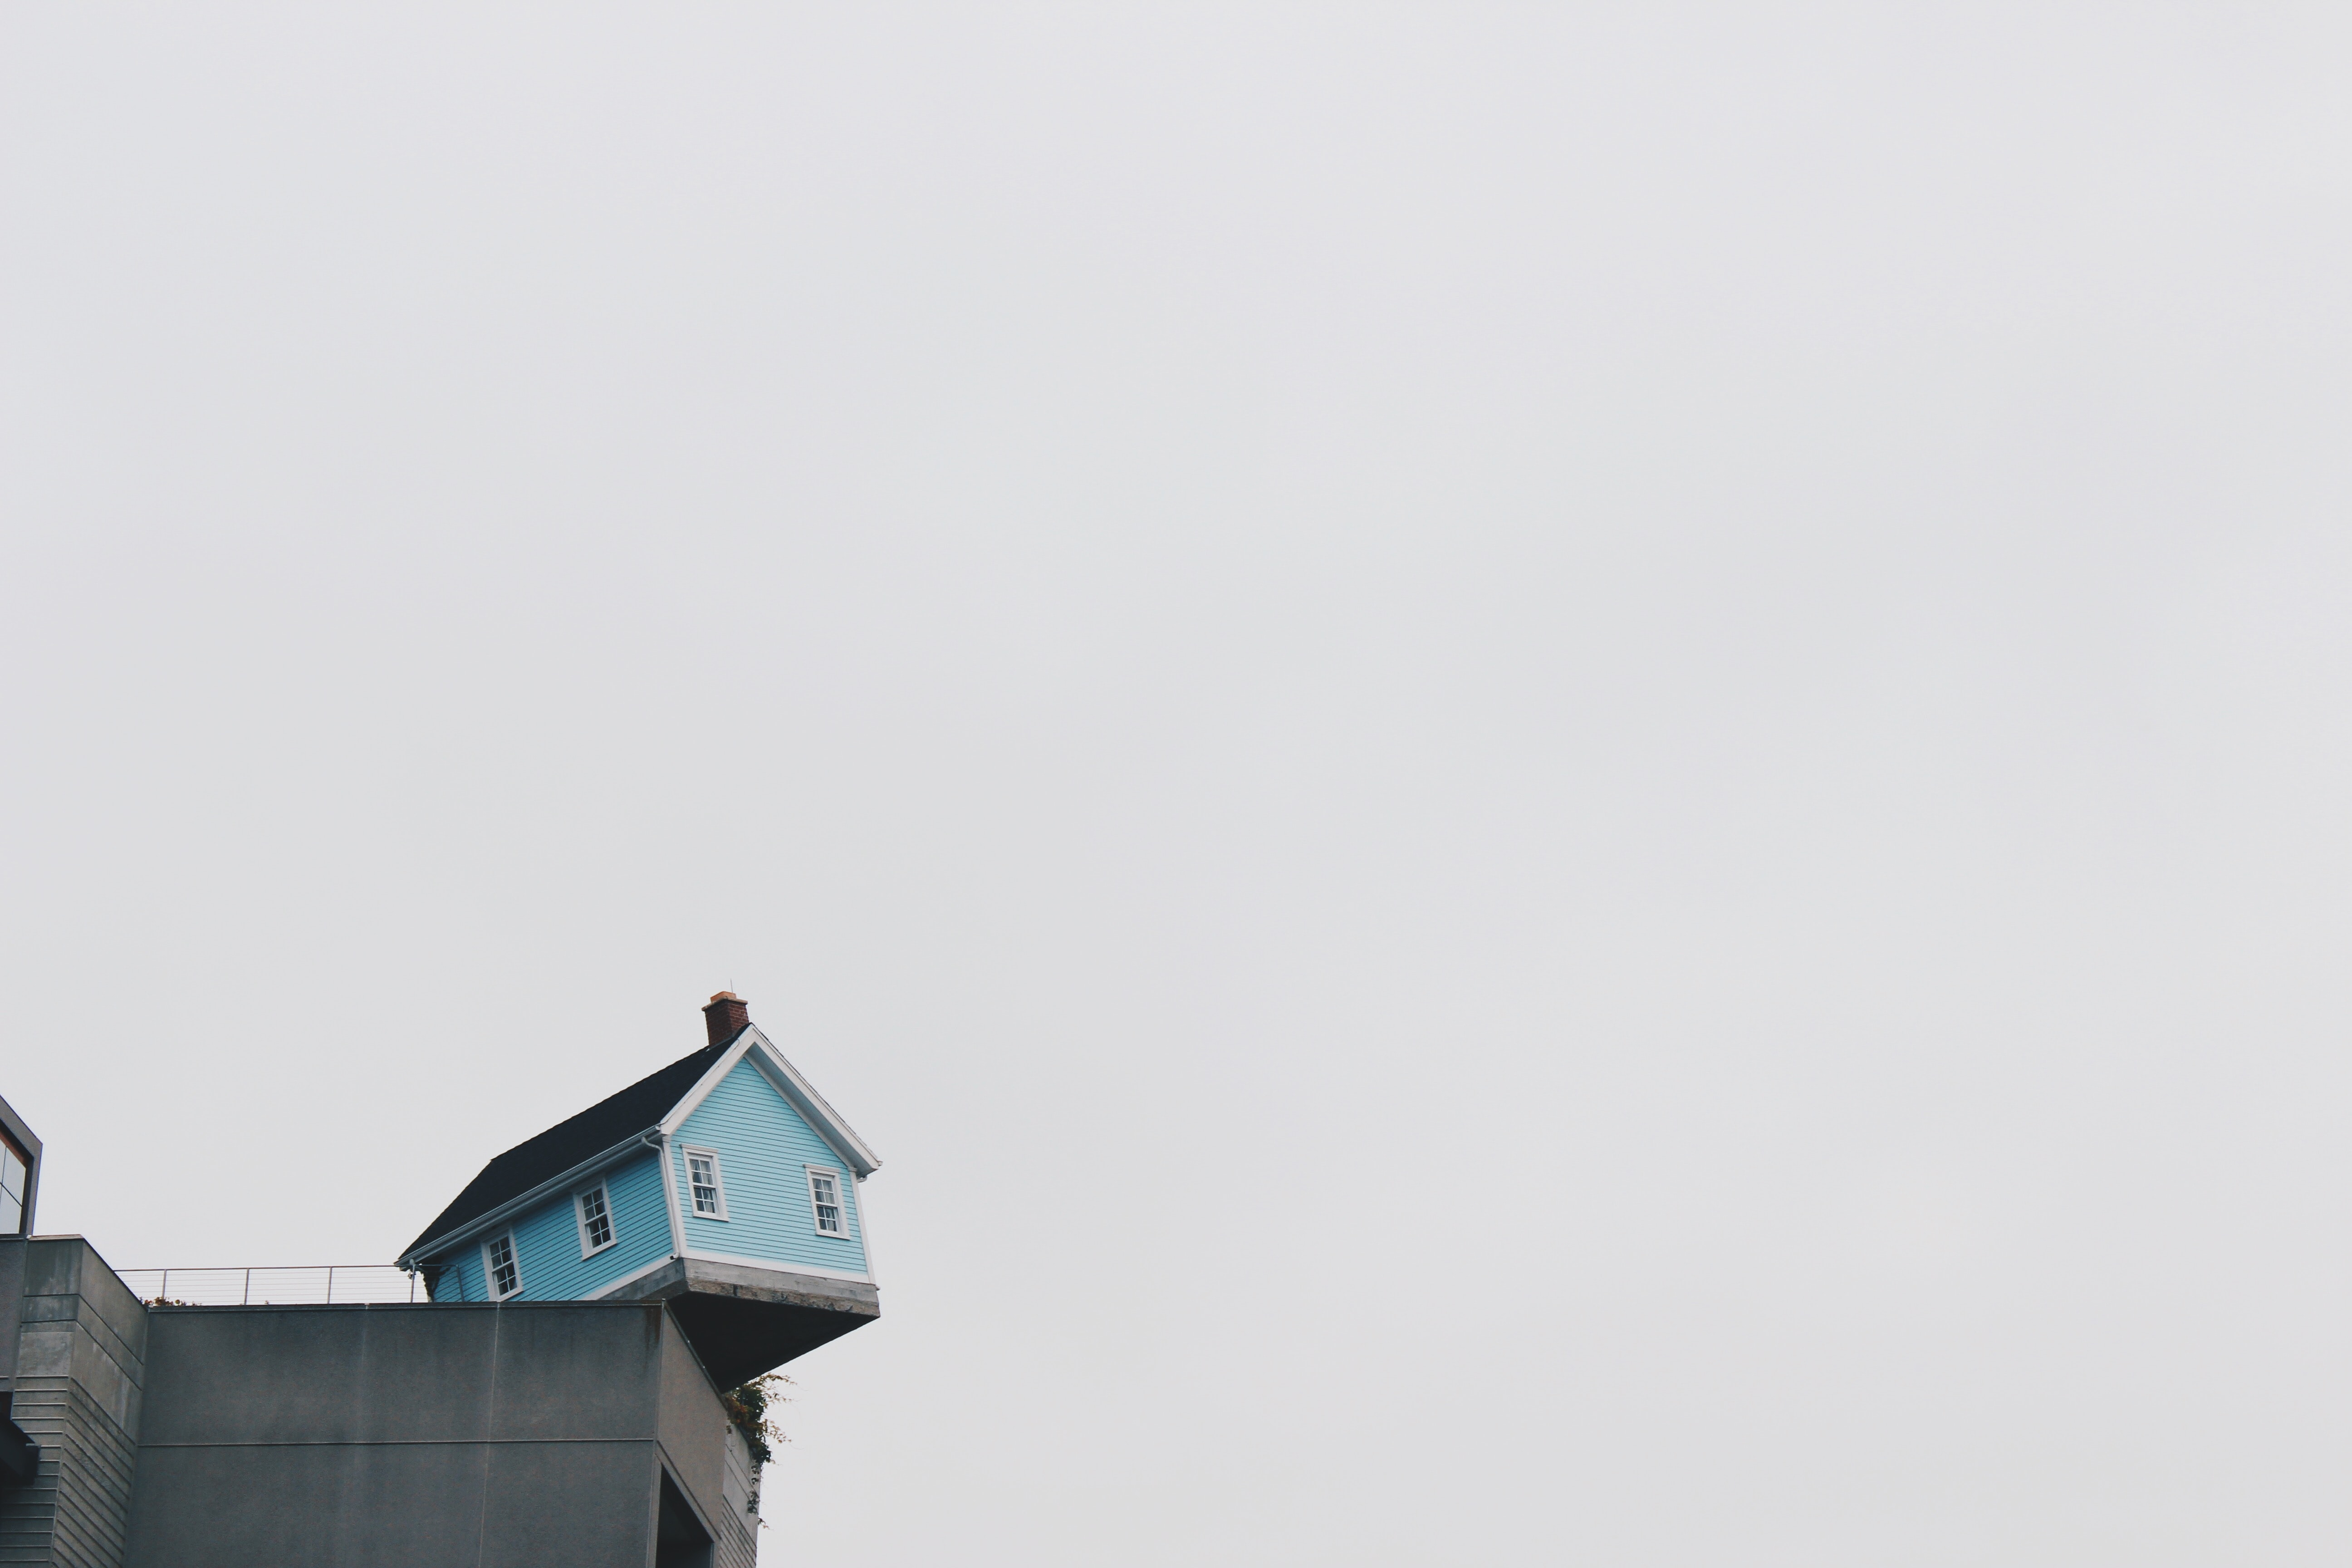 blue concrete storey house on top of building at daytime